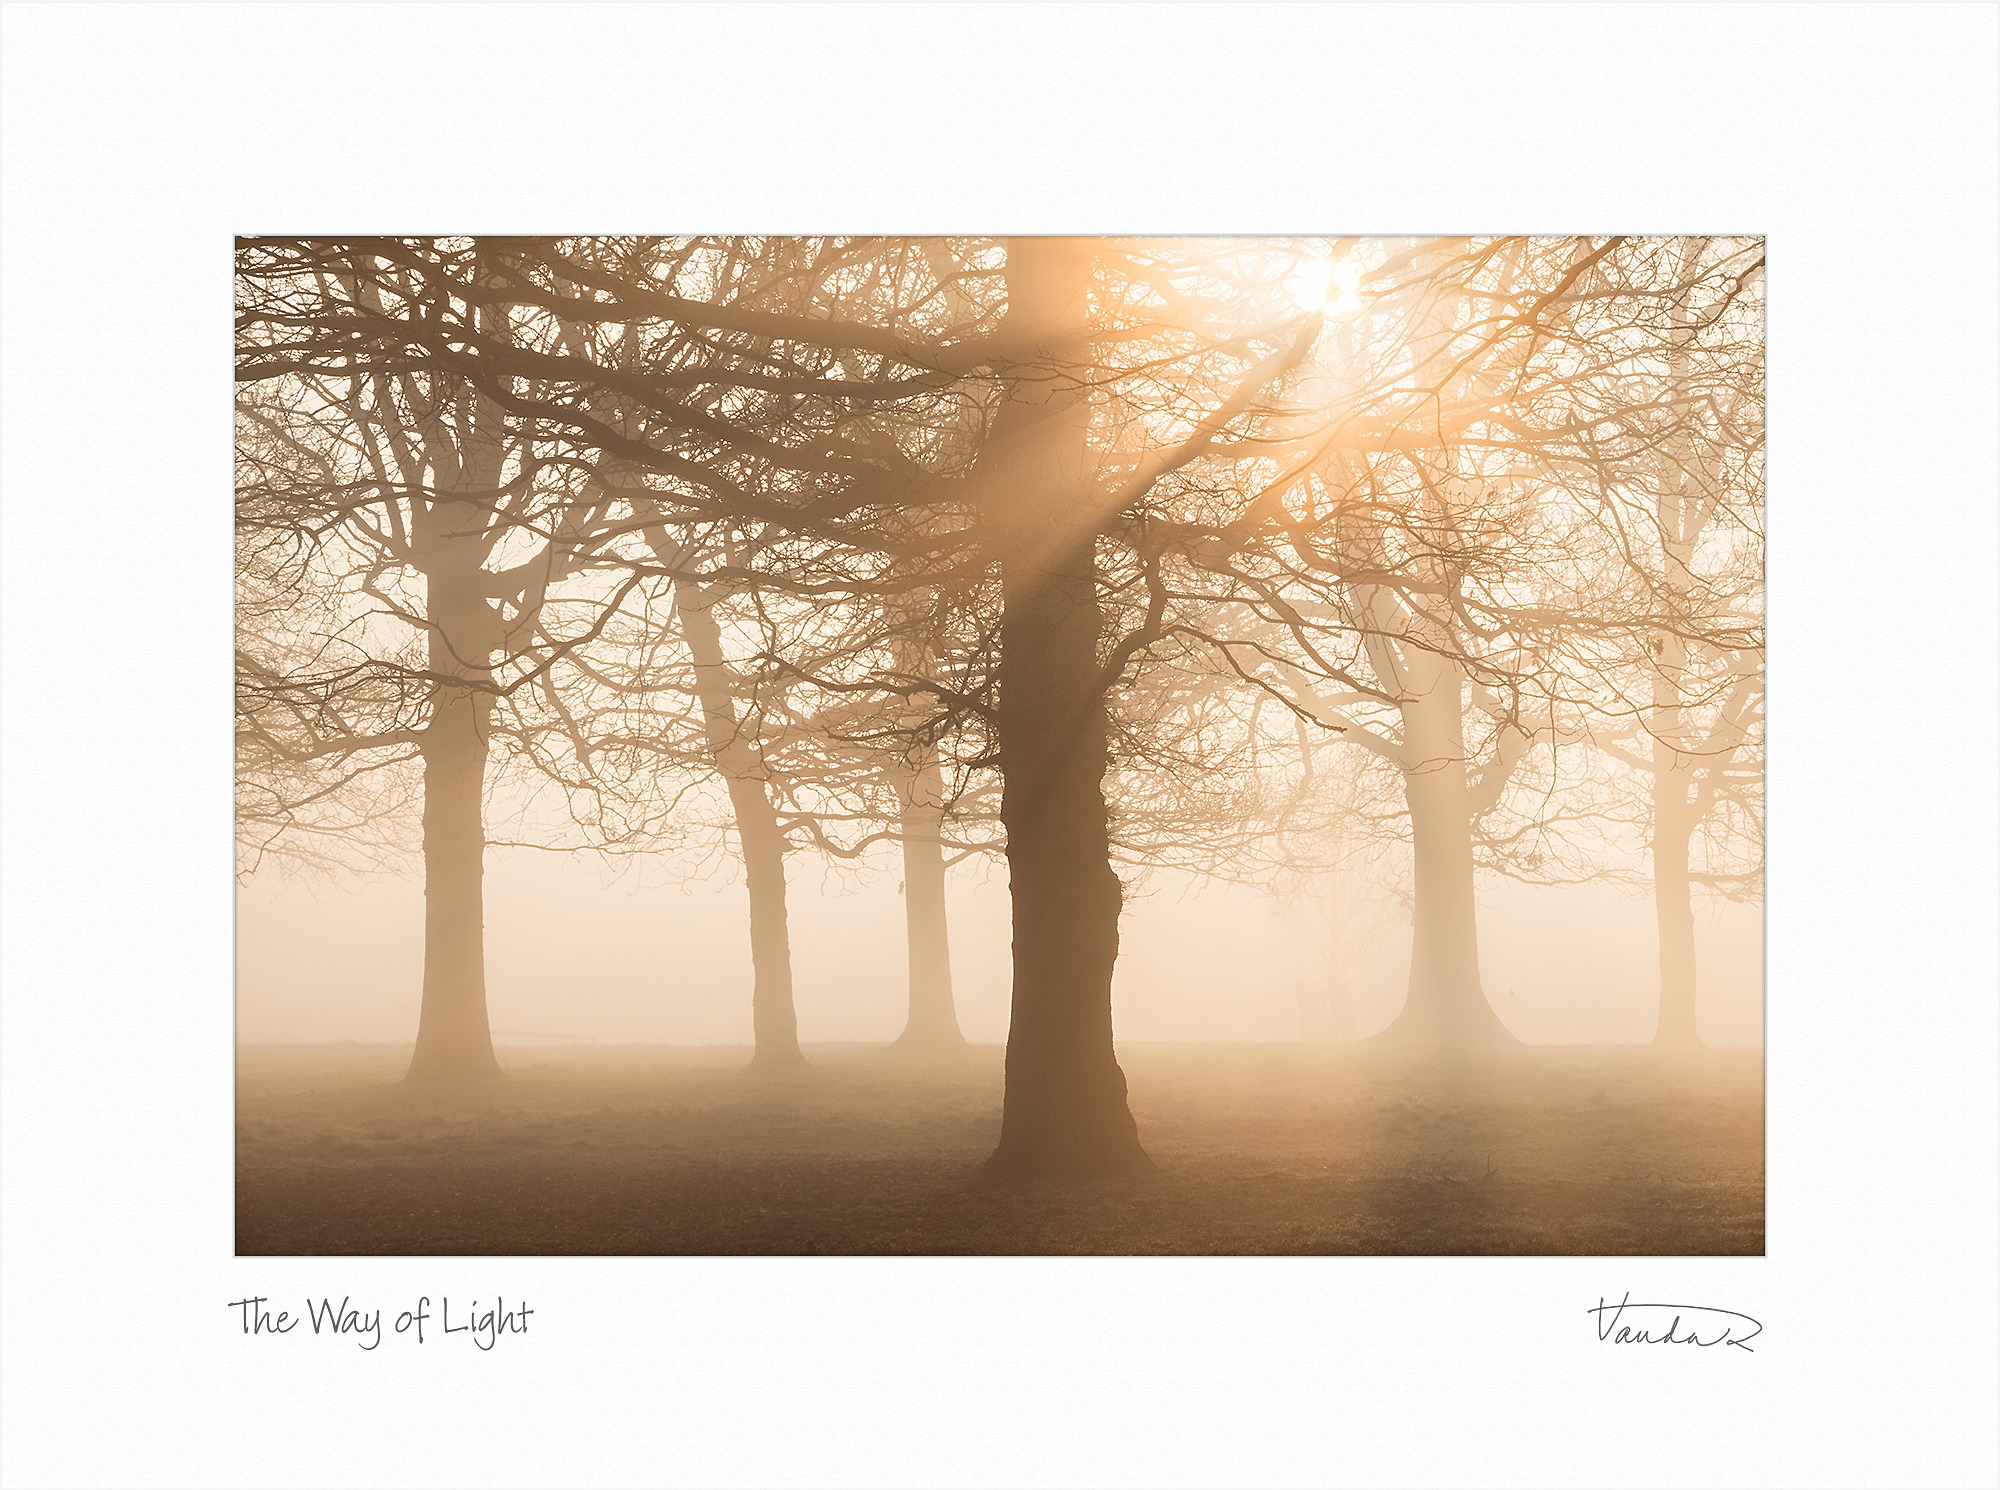 The Way of Light